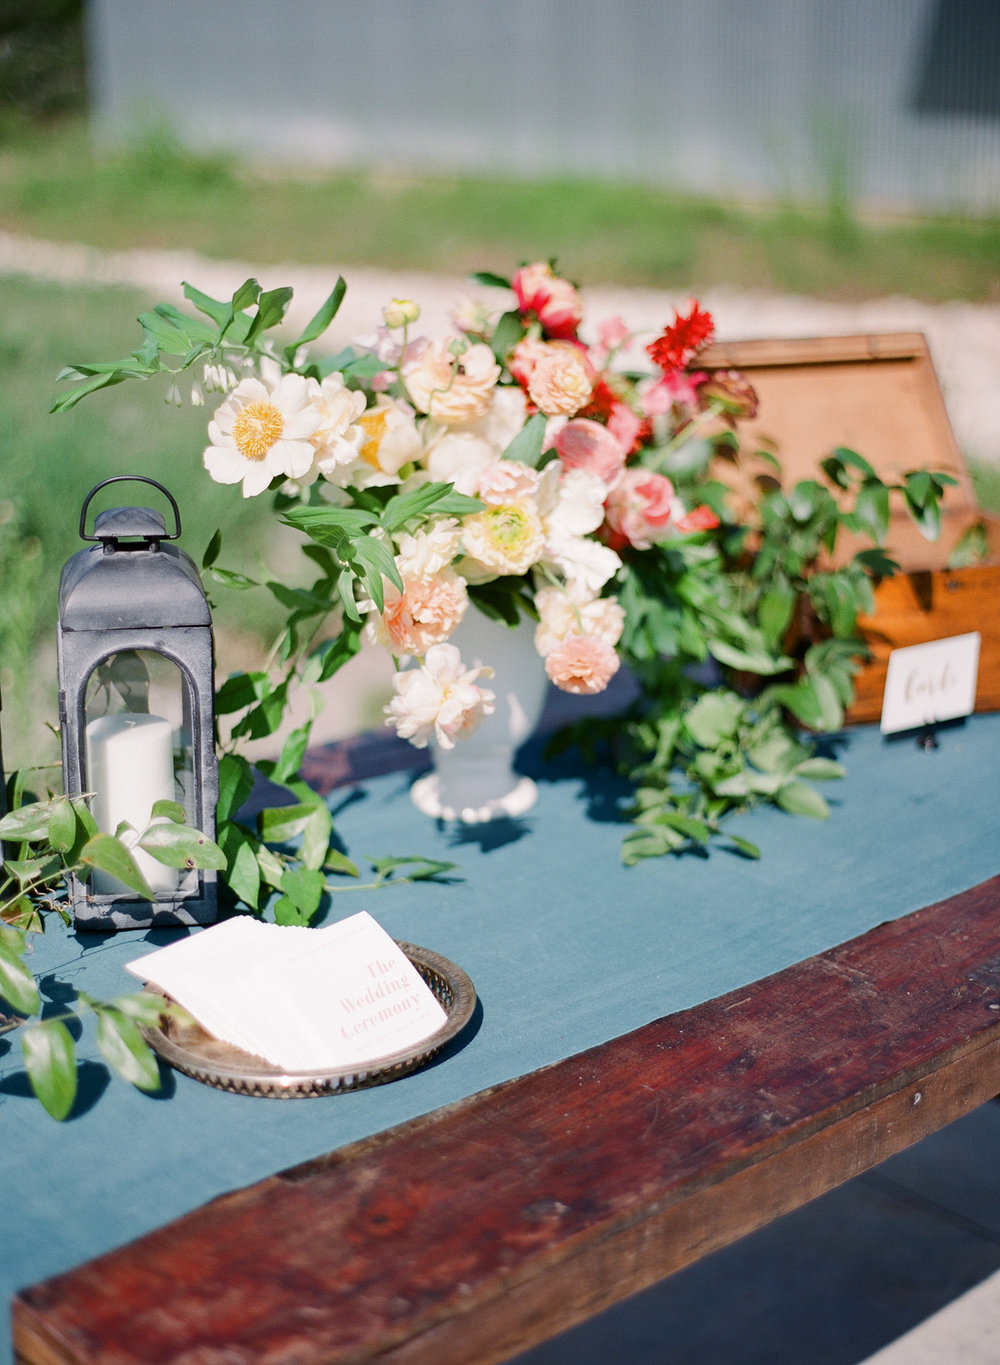 PROSPECT_HOUSE_WEDDING_AUSTIN_TX_BY_MATTHEW_MOORE_PHOTOGRAPHY_00265.jpg